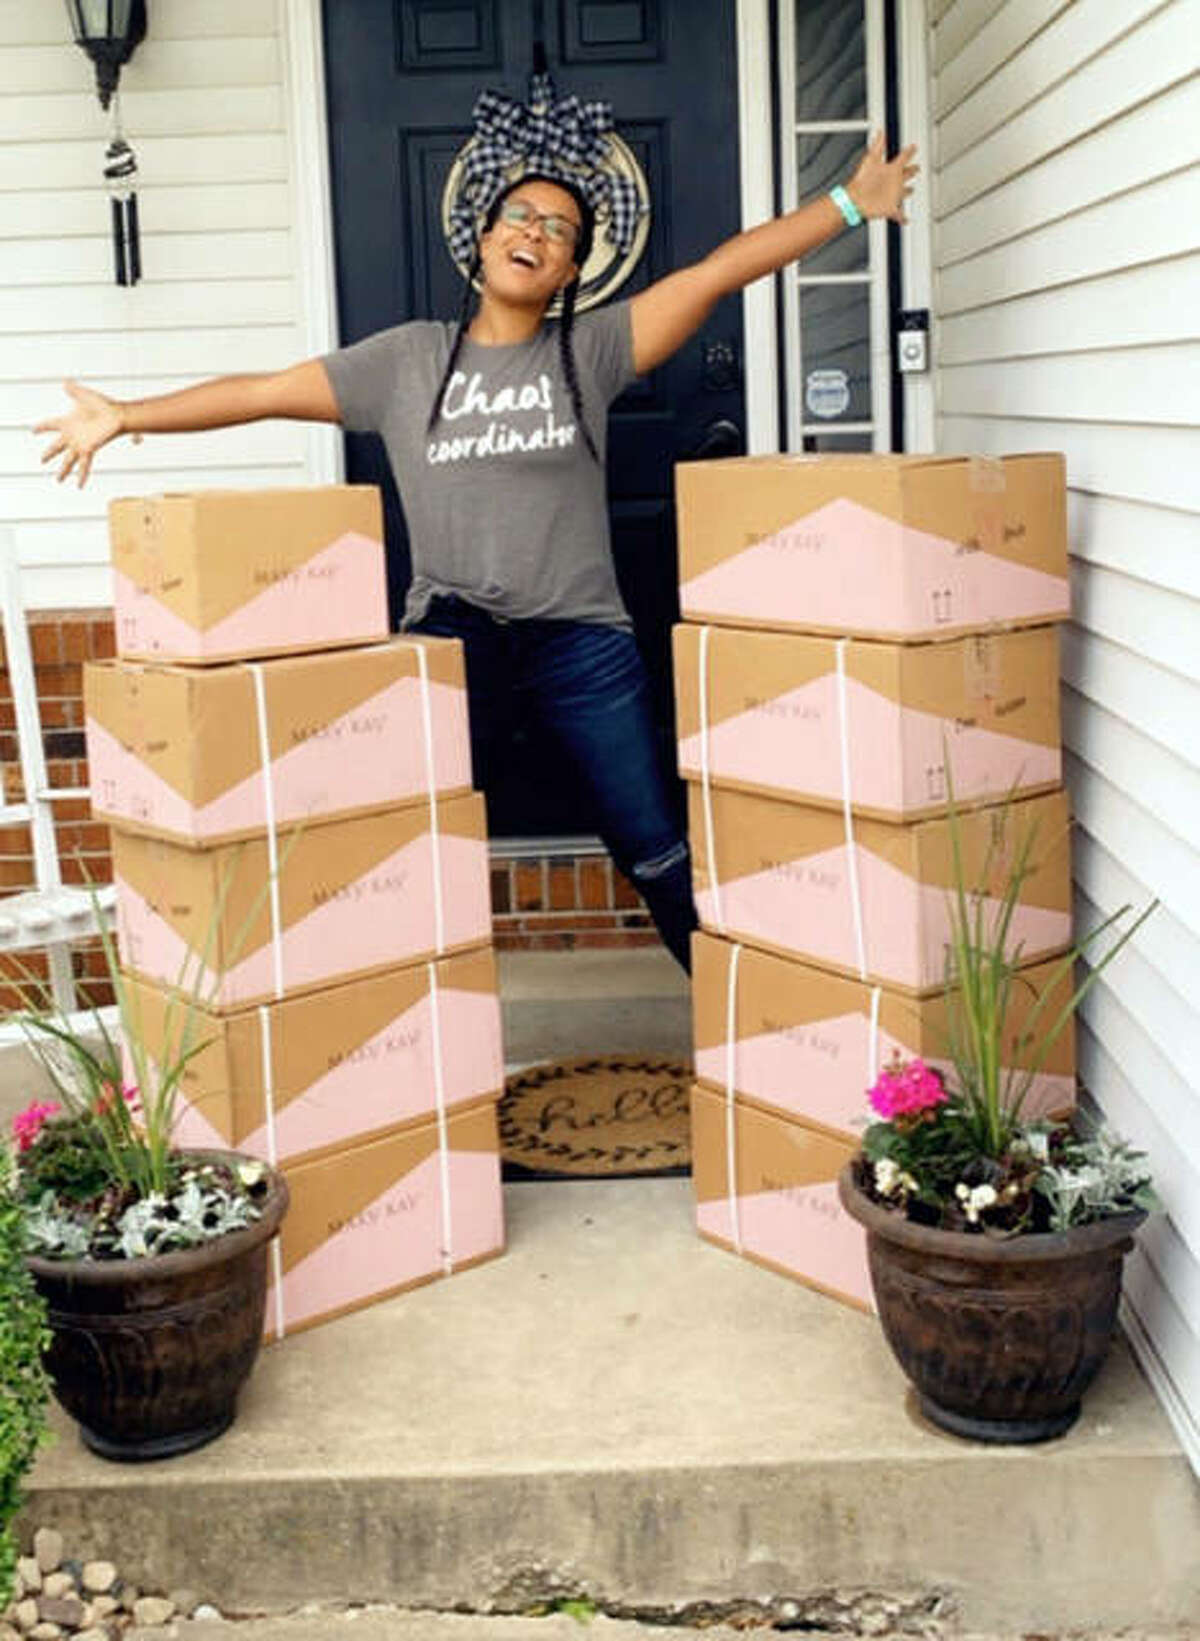 Shanyra Cox poses with the supplies she used to make 109 care packages for workers in the COVID-19 units at Christian Hospital in St. Louis and St. Anthony's Health Center in Alton.